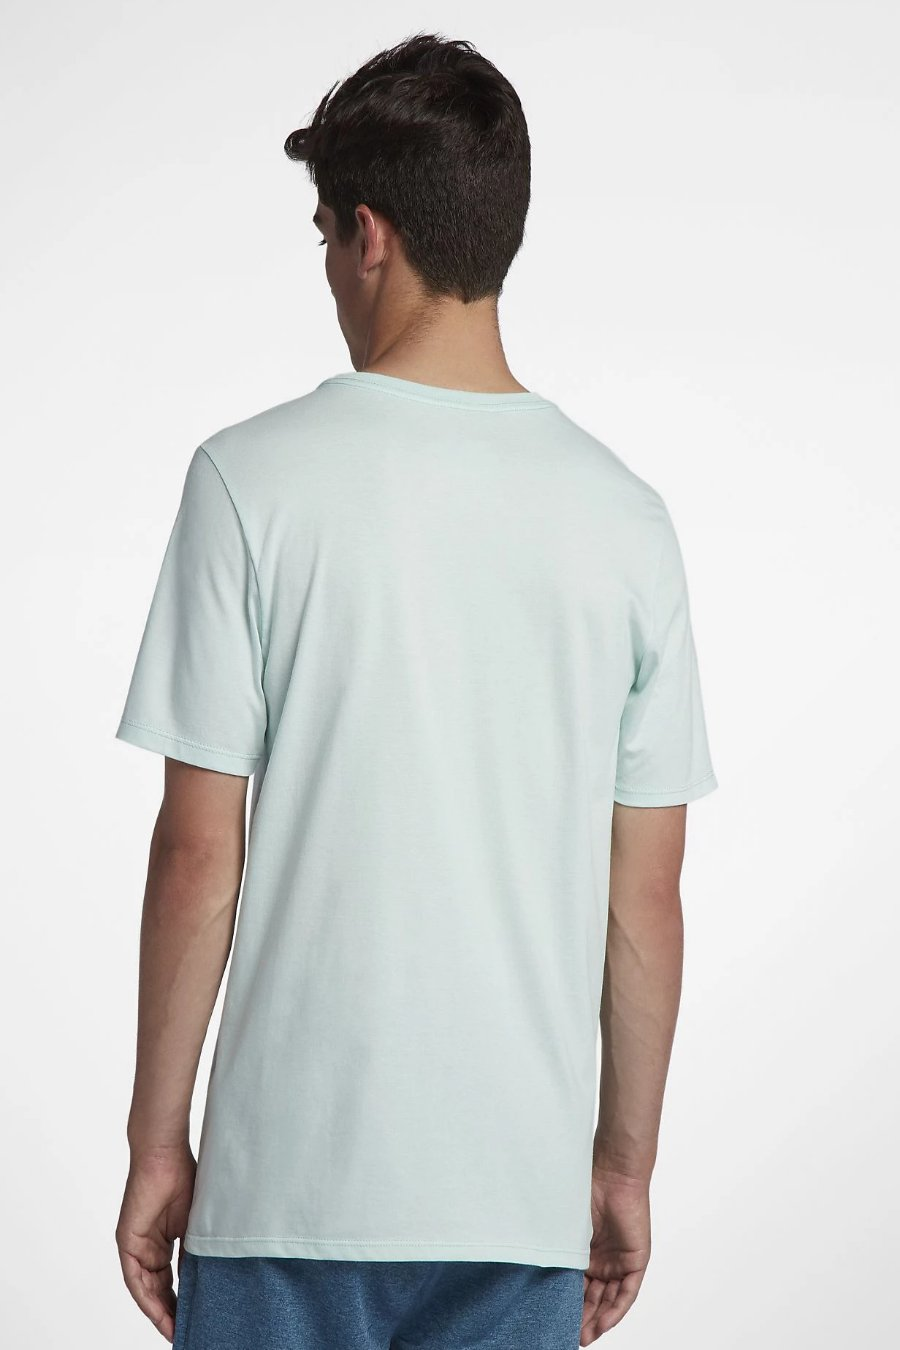 Hurley Premium One & Only Small Box Tee (Igloo)